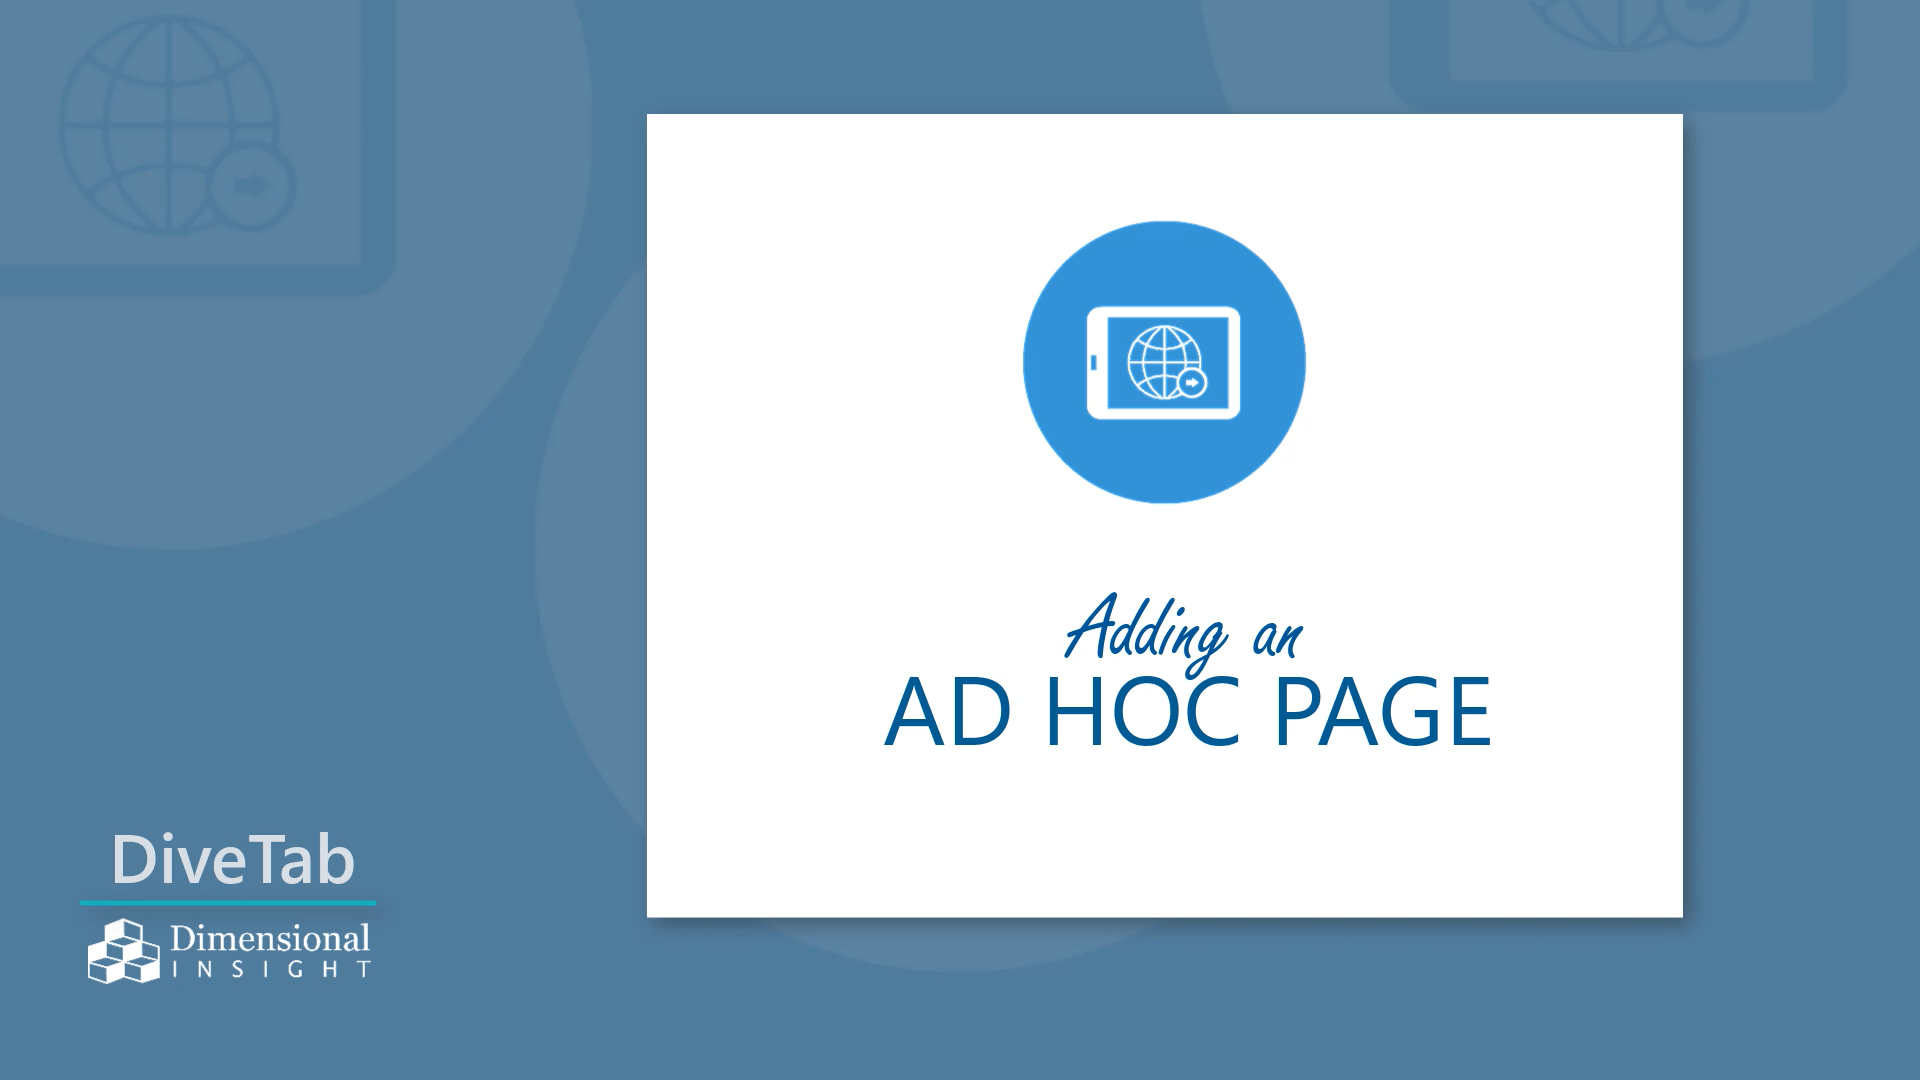 Adding an Ad Hoc Page